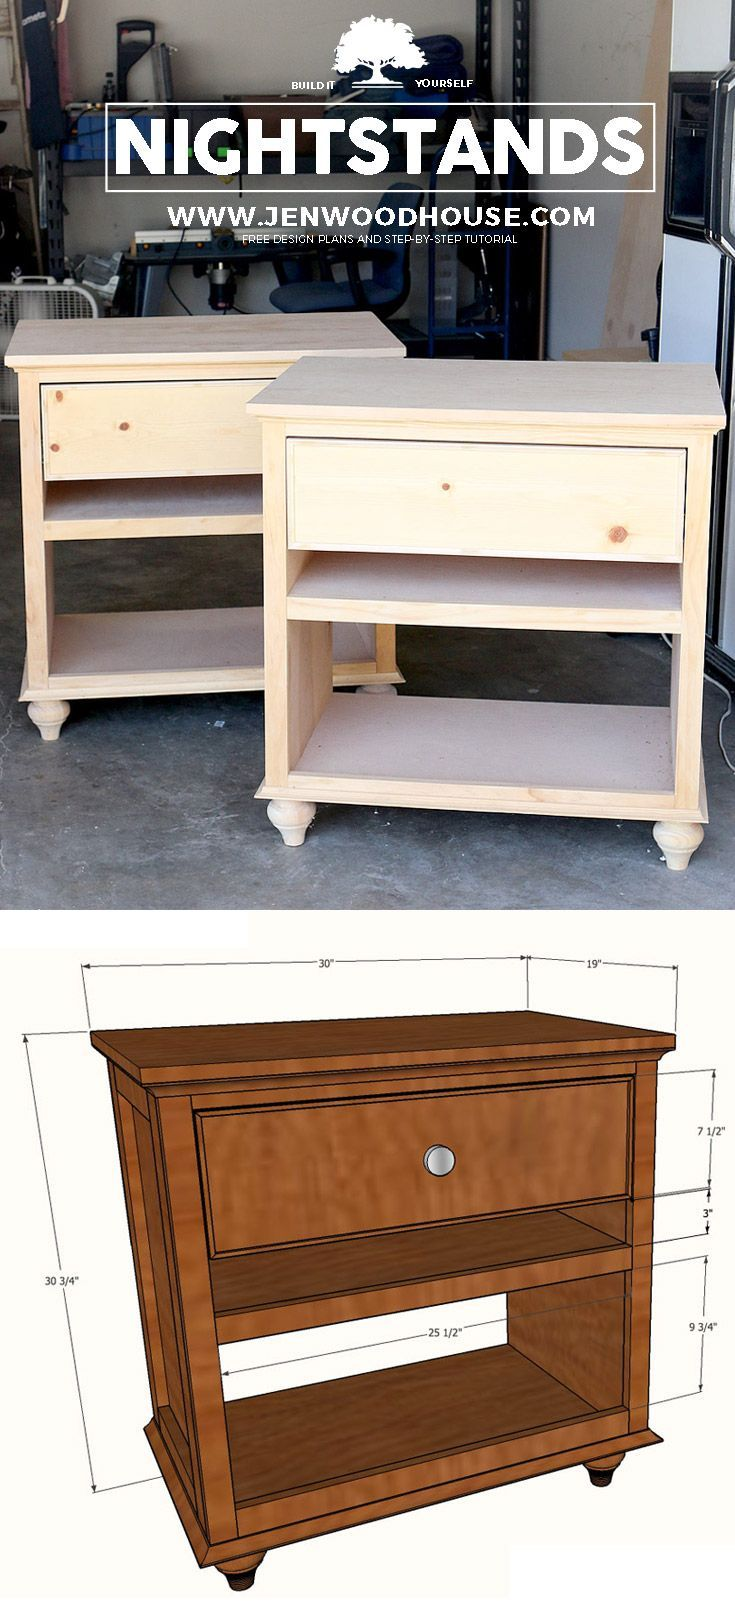 How to build a DIY nightstand - doesn't look too hard to build! Free plans and tutorial #diy #nightstand